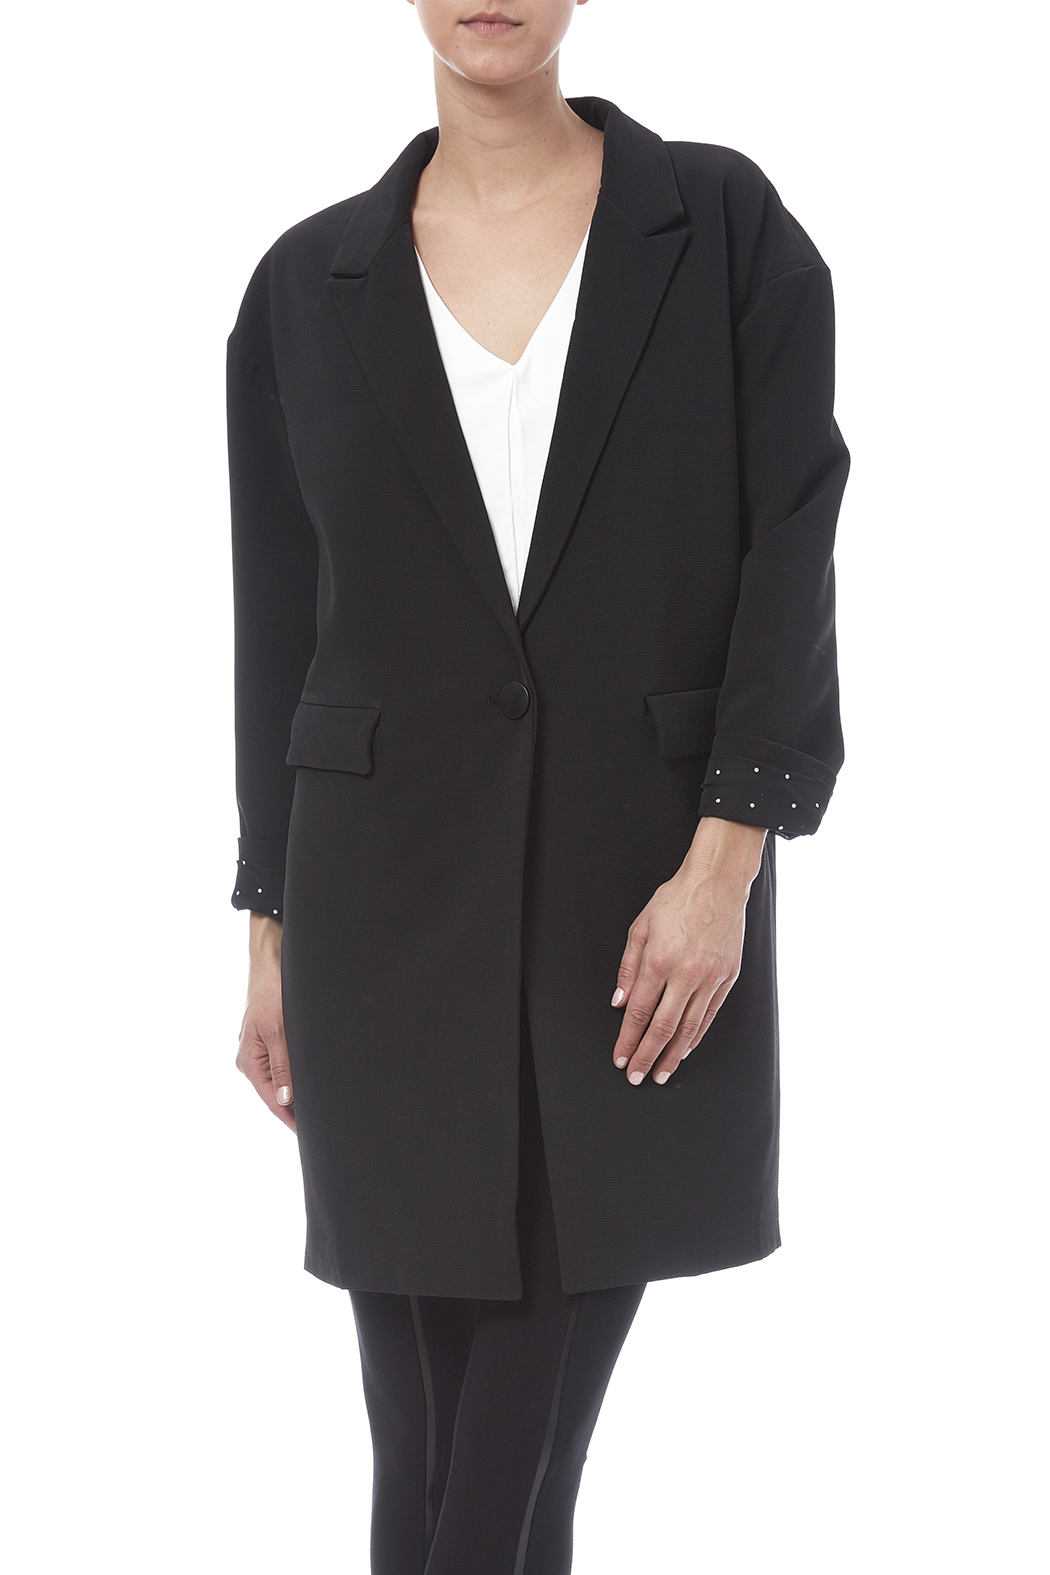 frnch oversized blazer from vermont by raw honey apparel shoptiques. Black Bedroom Furniture Sets. Home Design Ideas